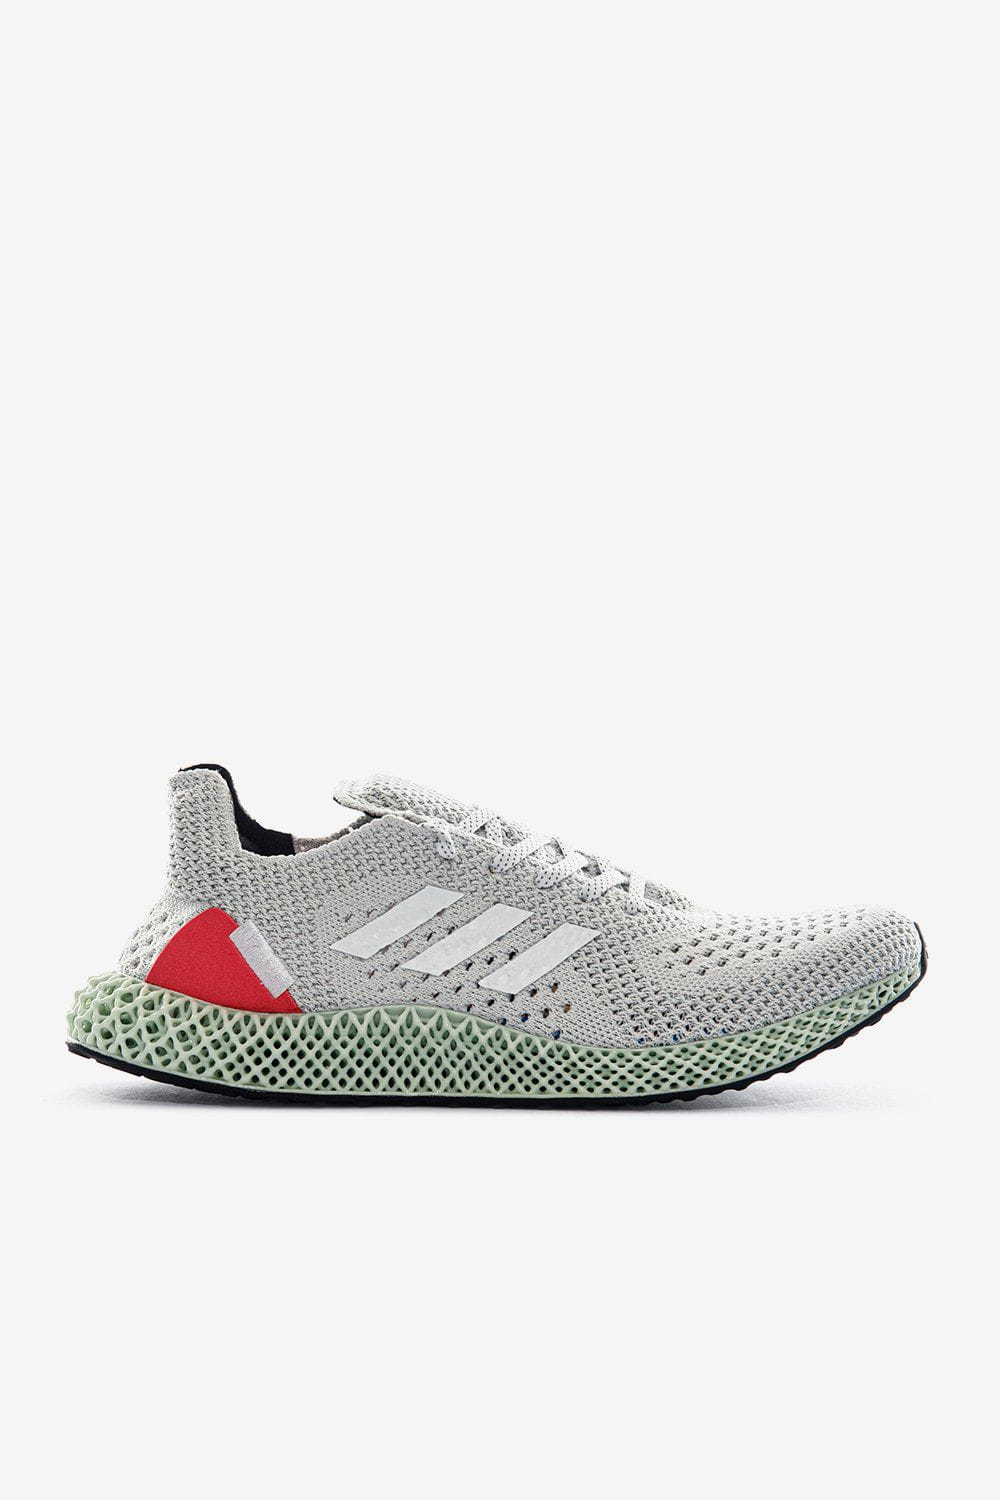 adidas Footwear 4D Runner Energy Concepts